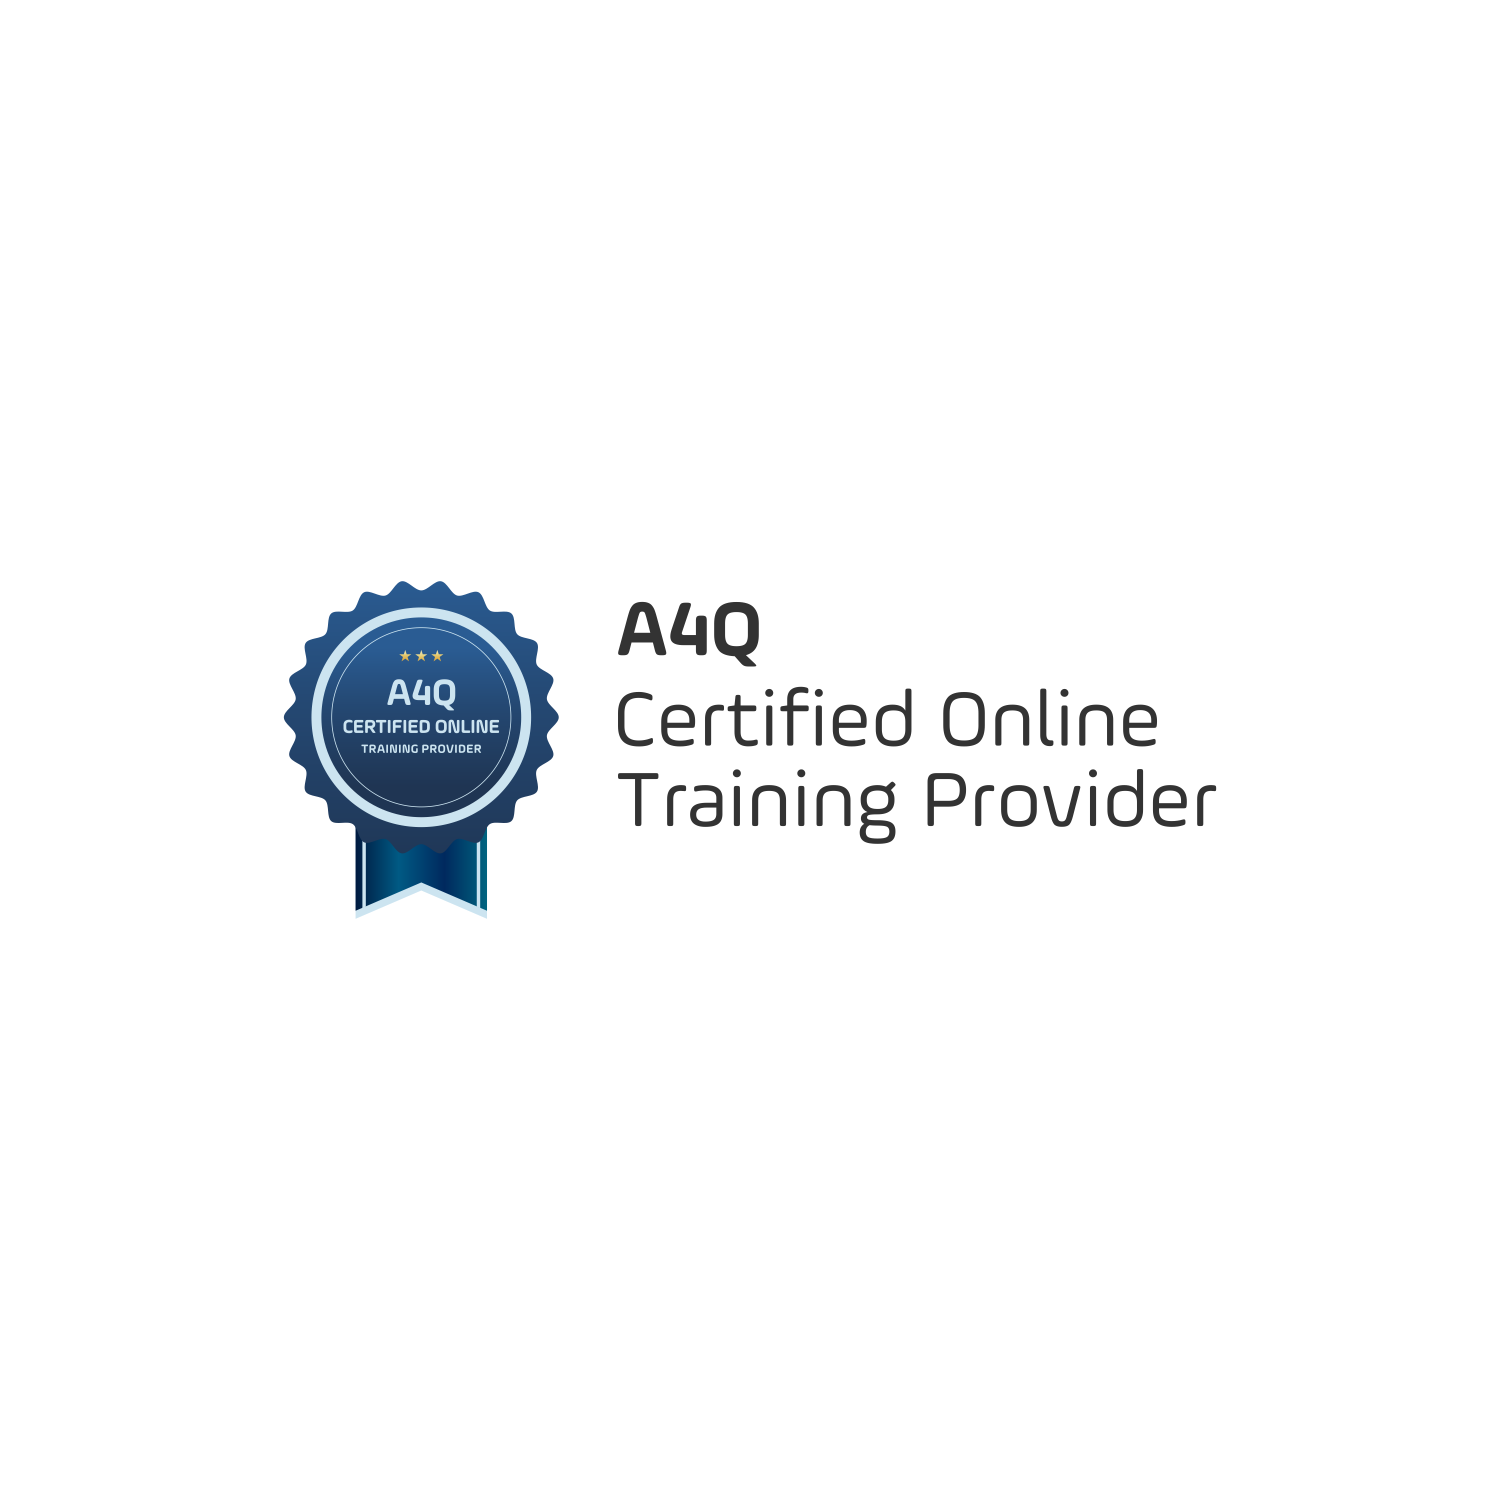 A4Q Certified Online Training Provider